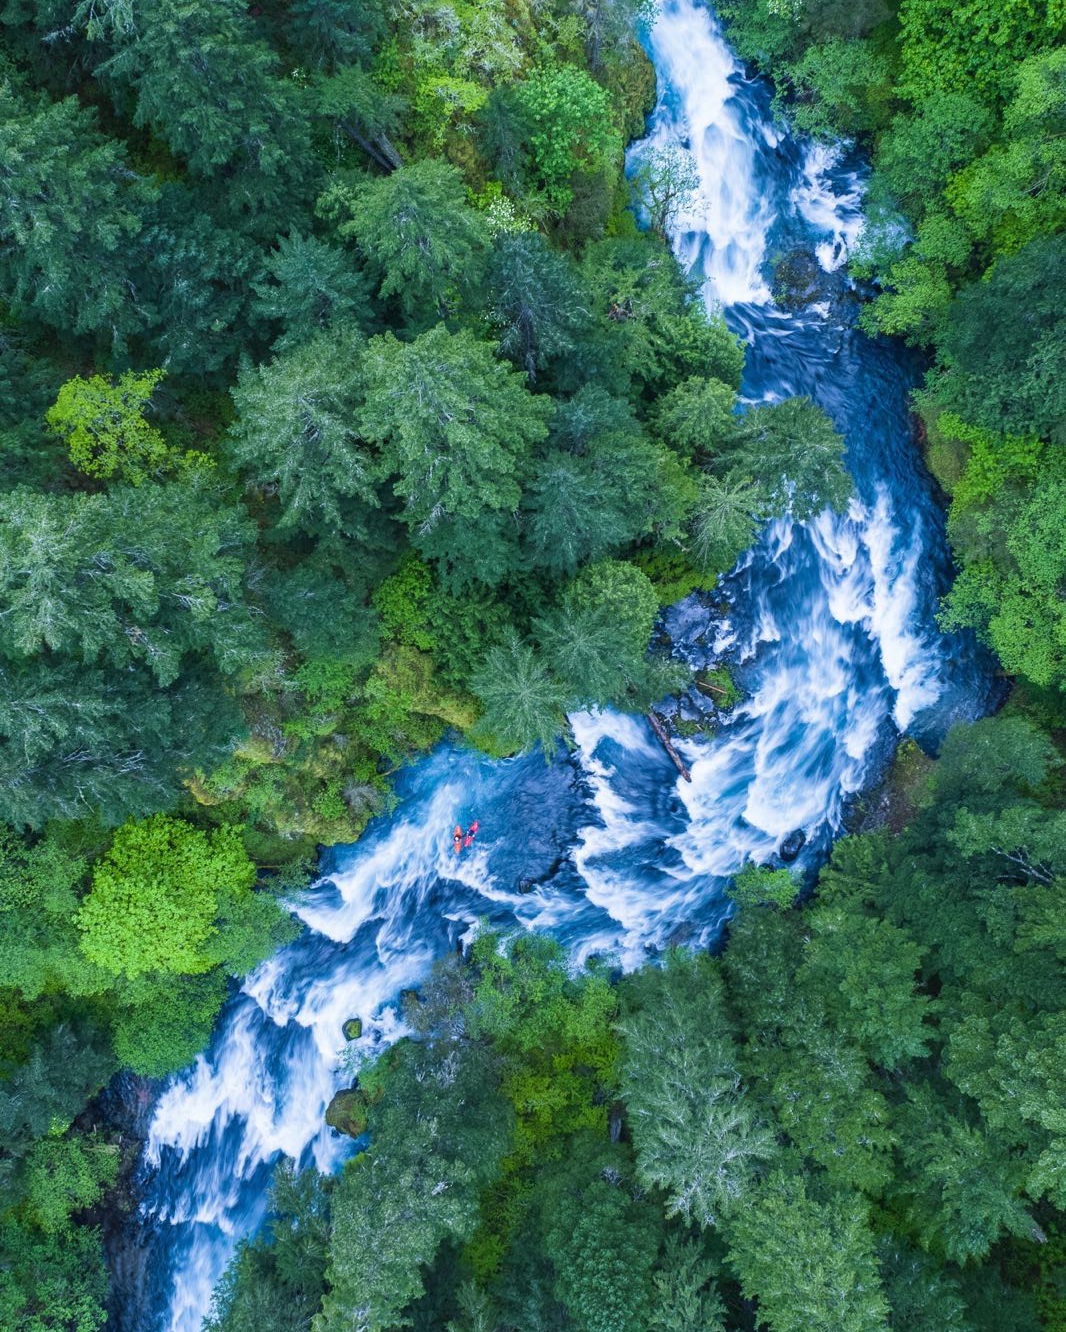 Check out this incredible drone shot of two kayakers making their way down the Little White Salmon River in Washington, USA. This 19 mile tributary of the Columbia River has become a popular kayaking destination, with extended stretches of Class V (extremely difficult) rapids.    Captured by Karim Iliya